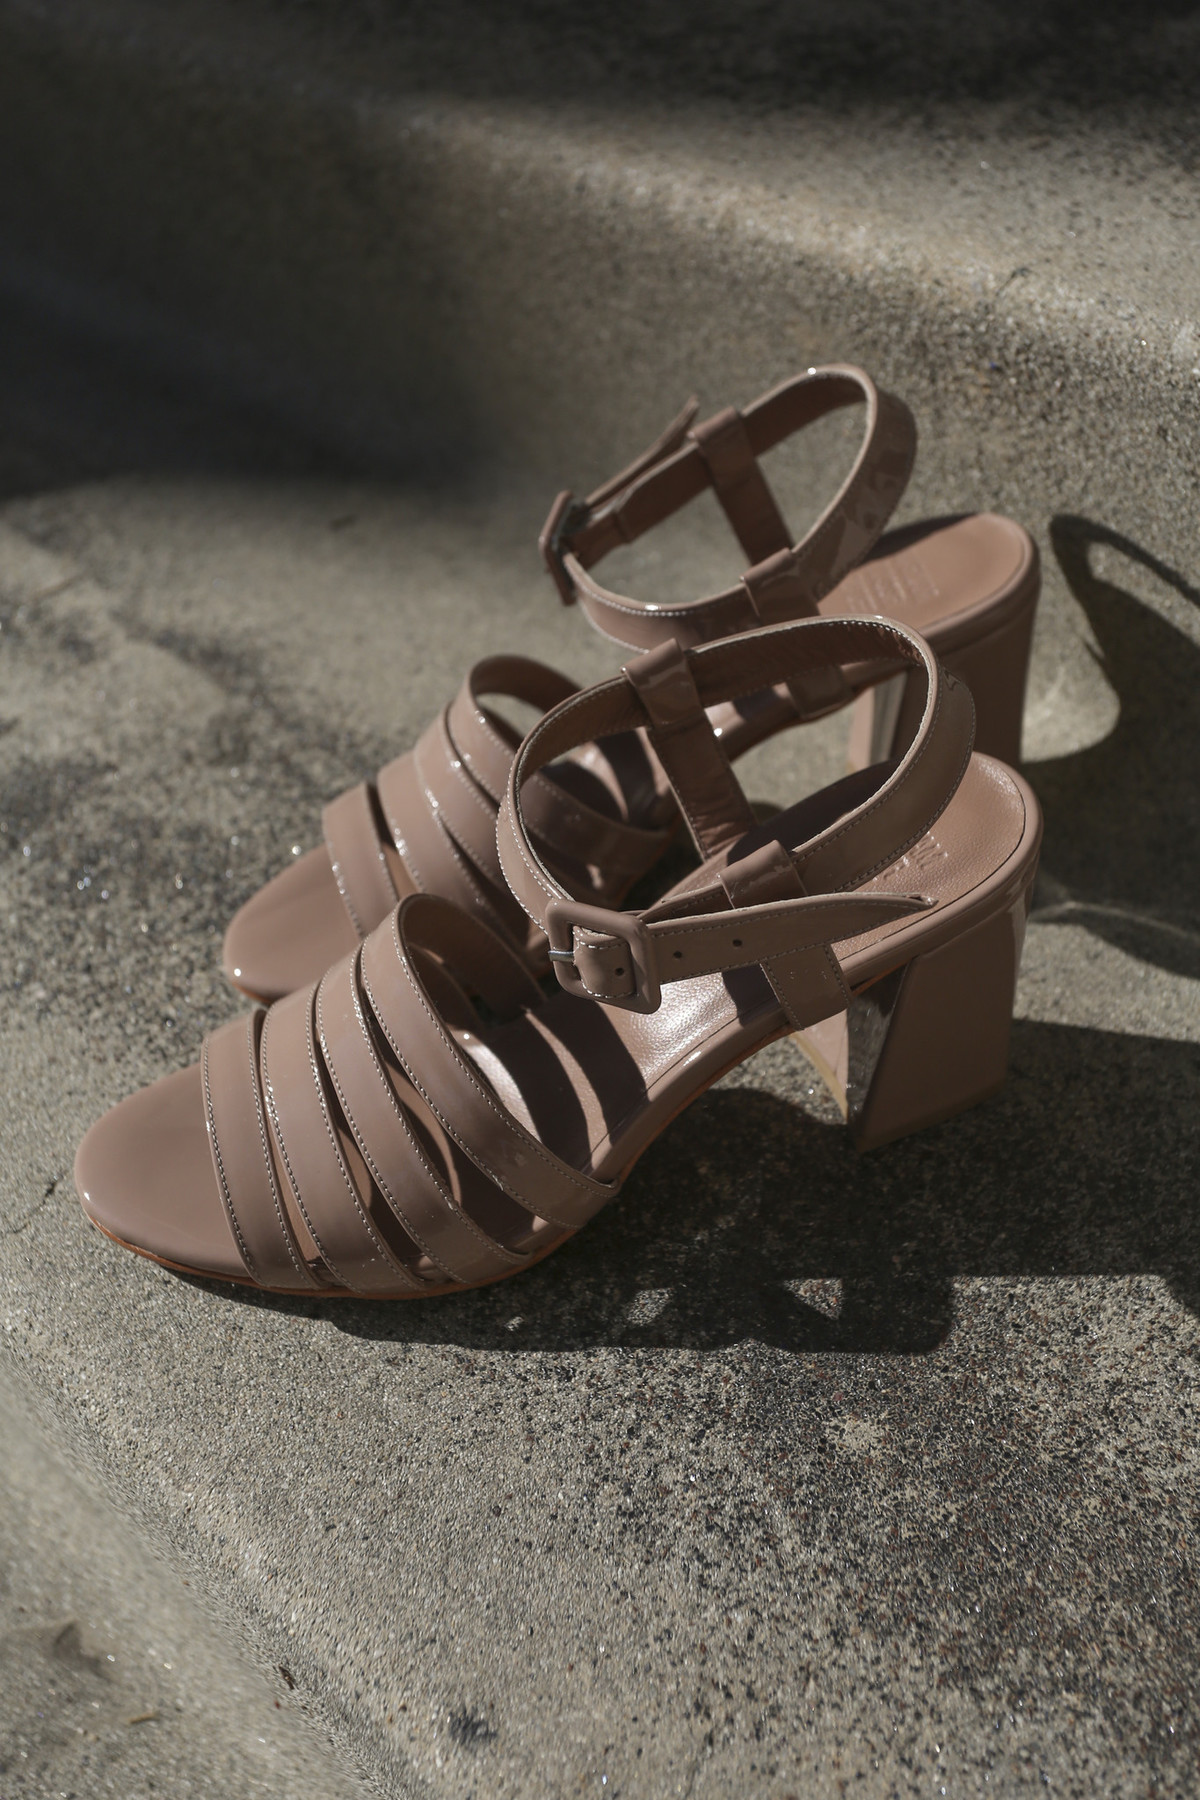 953df880c18 Maryam Nassir Zadeh Palma High Sandal in Taupe Patent